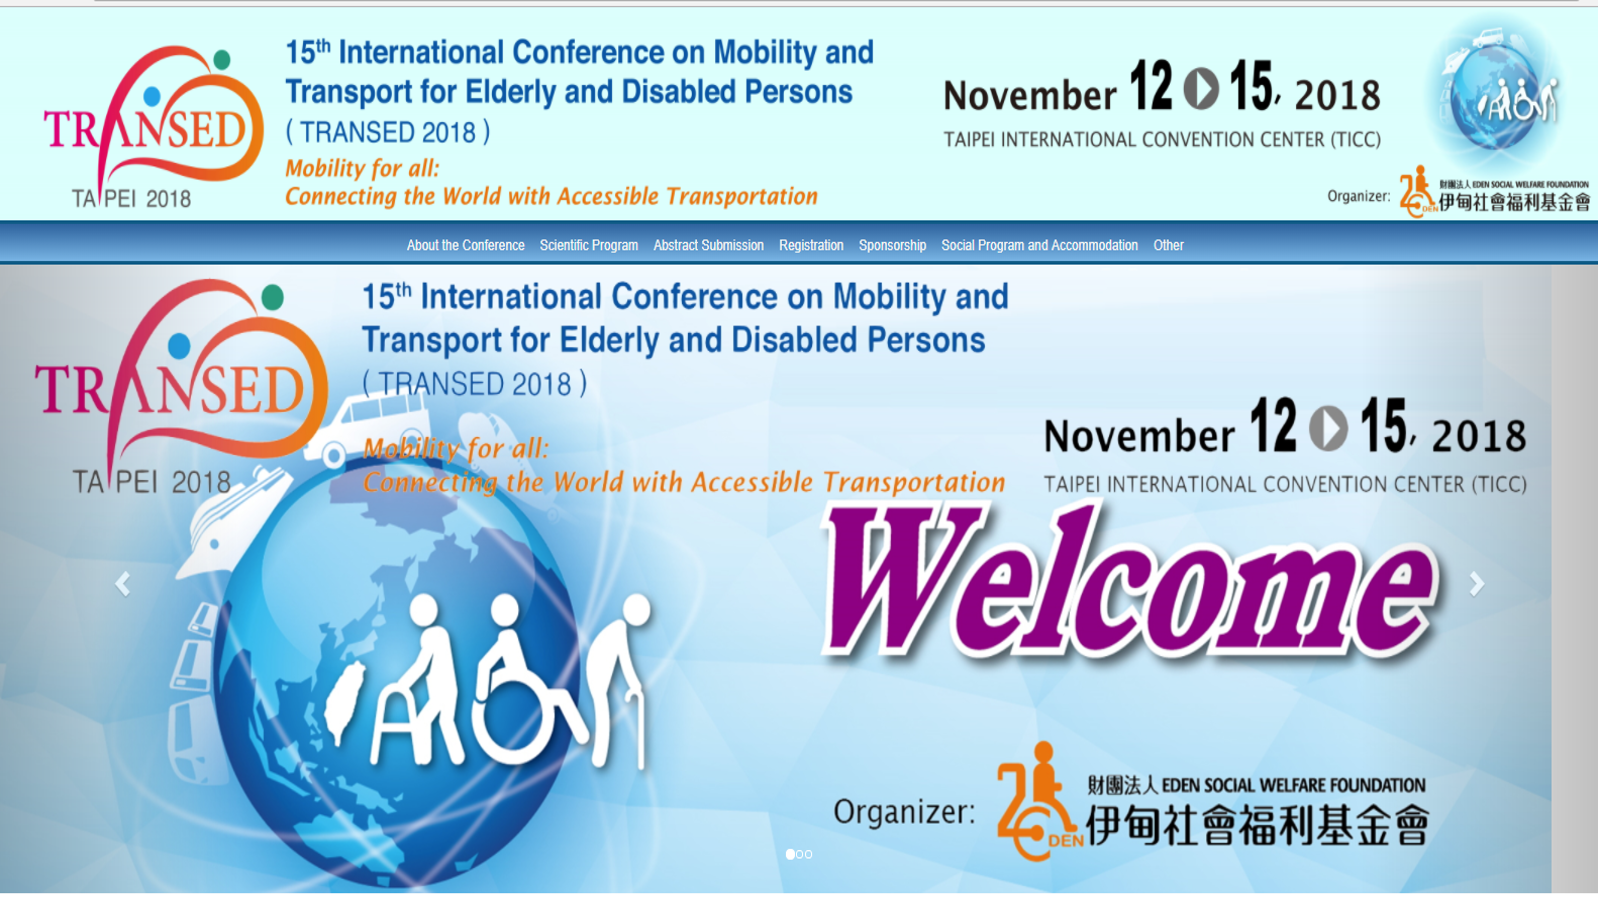 Image of TRANSED 2018 Conference website homepage with a hyperlink